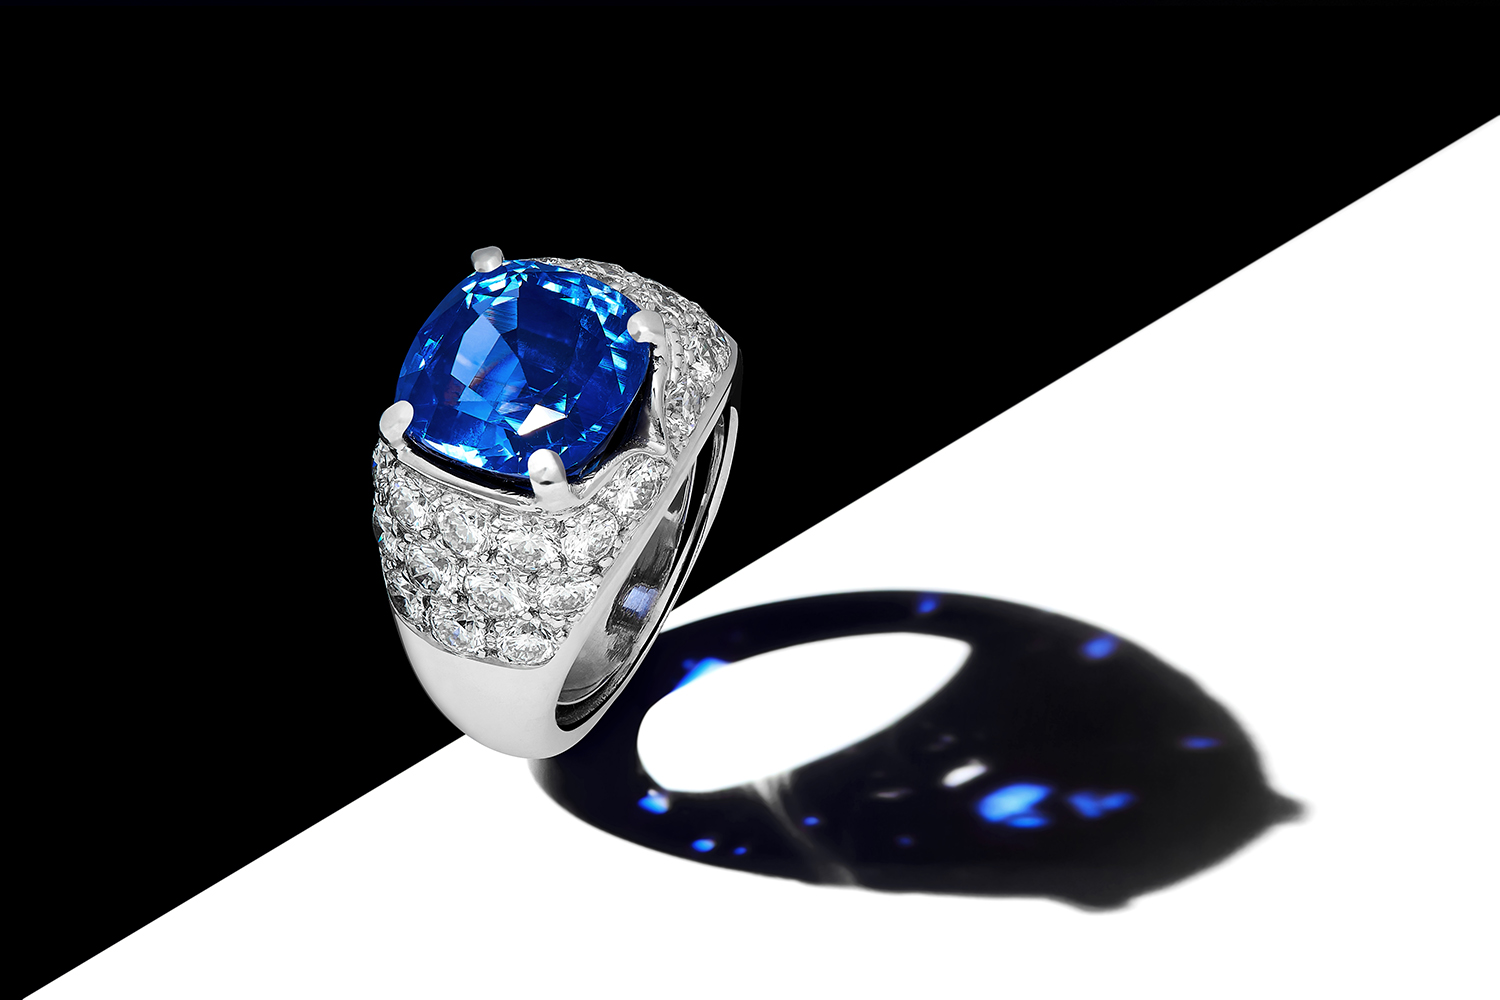 Treasure of the week: the Kashmir sapphire